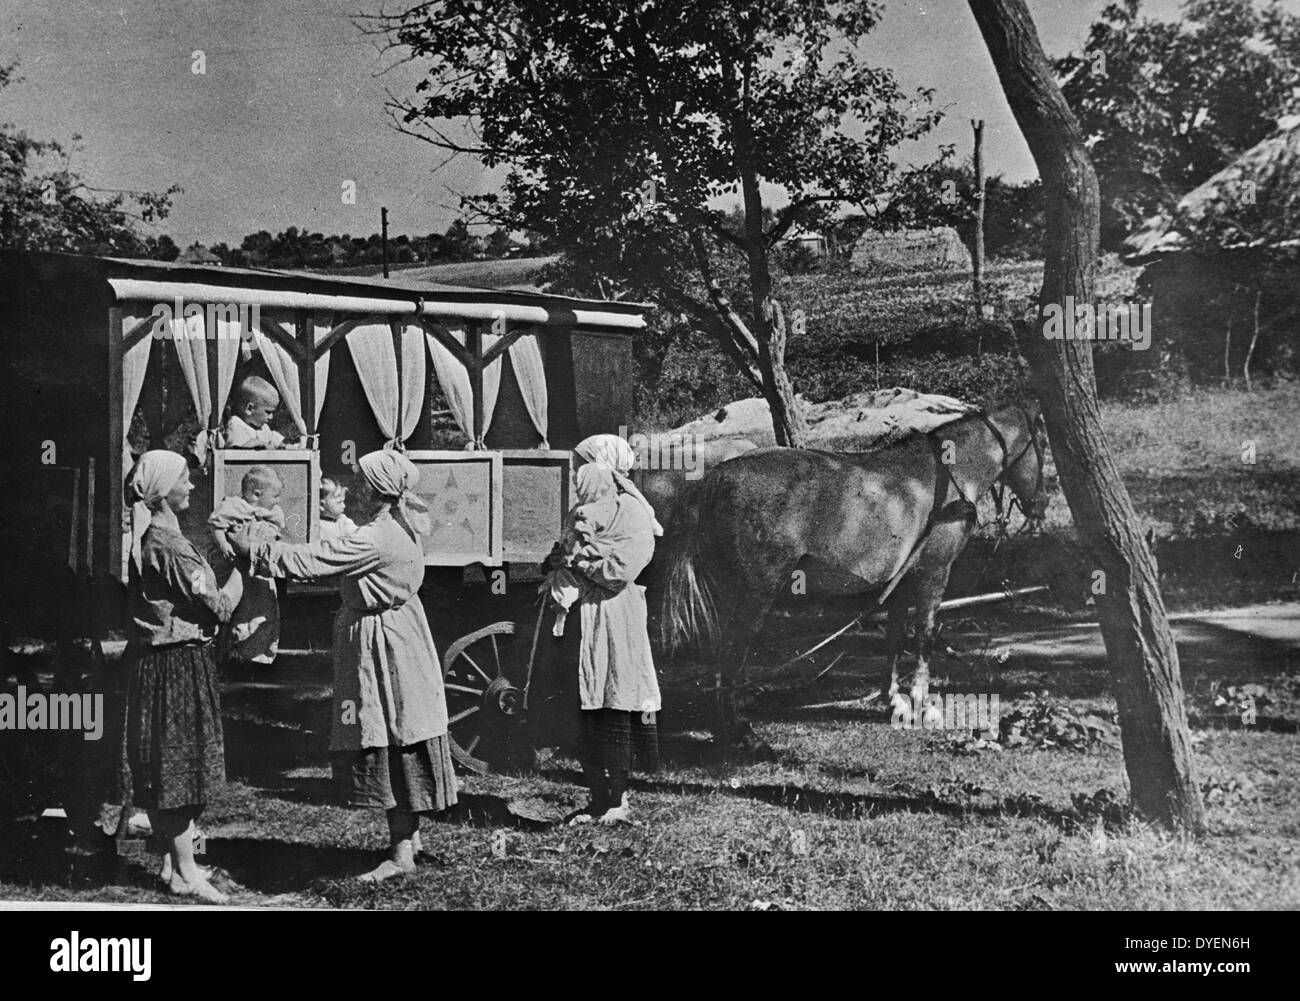 Collective farm nursery-on-wheels in the USSR (Union of Soviet Socialist Republics). between 1930 and 1940 - Stock Image